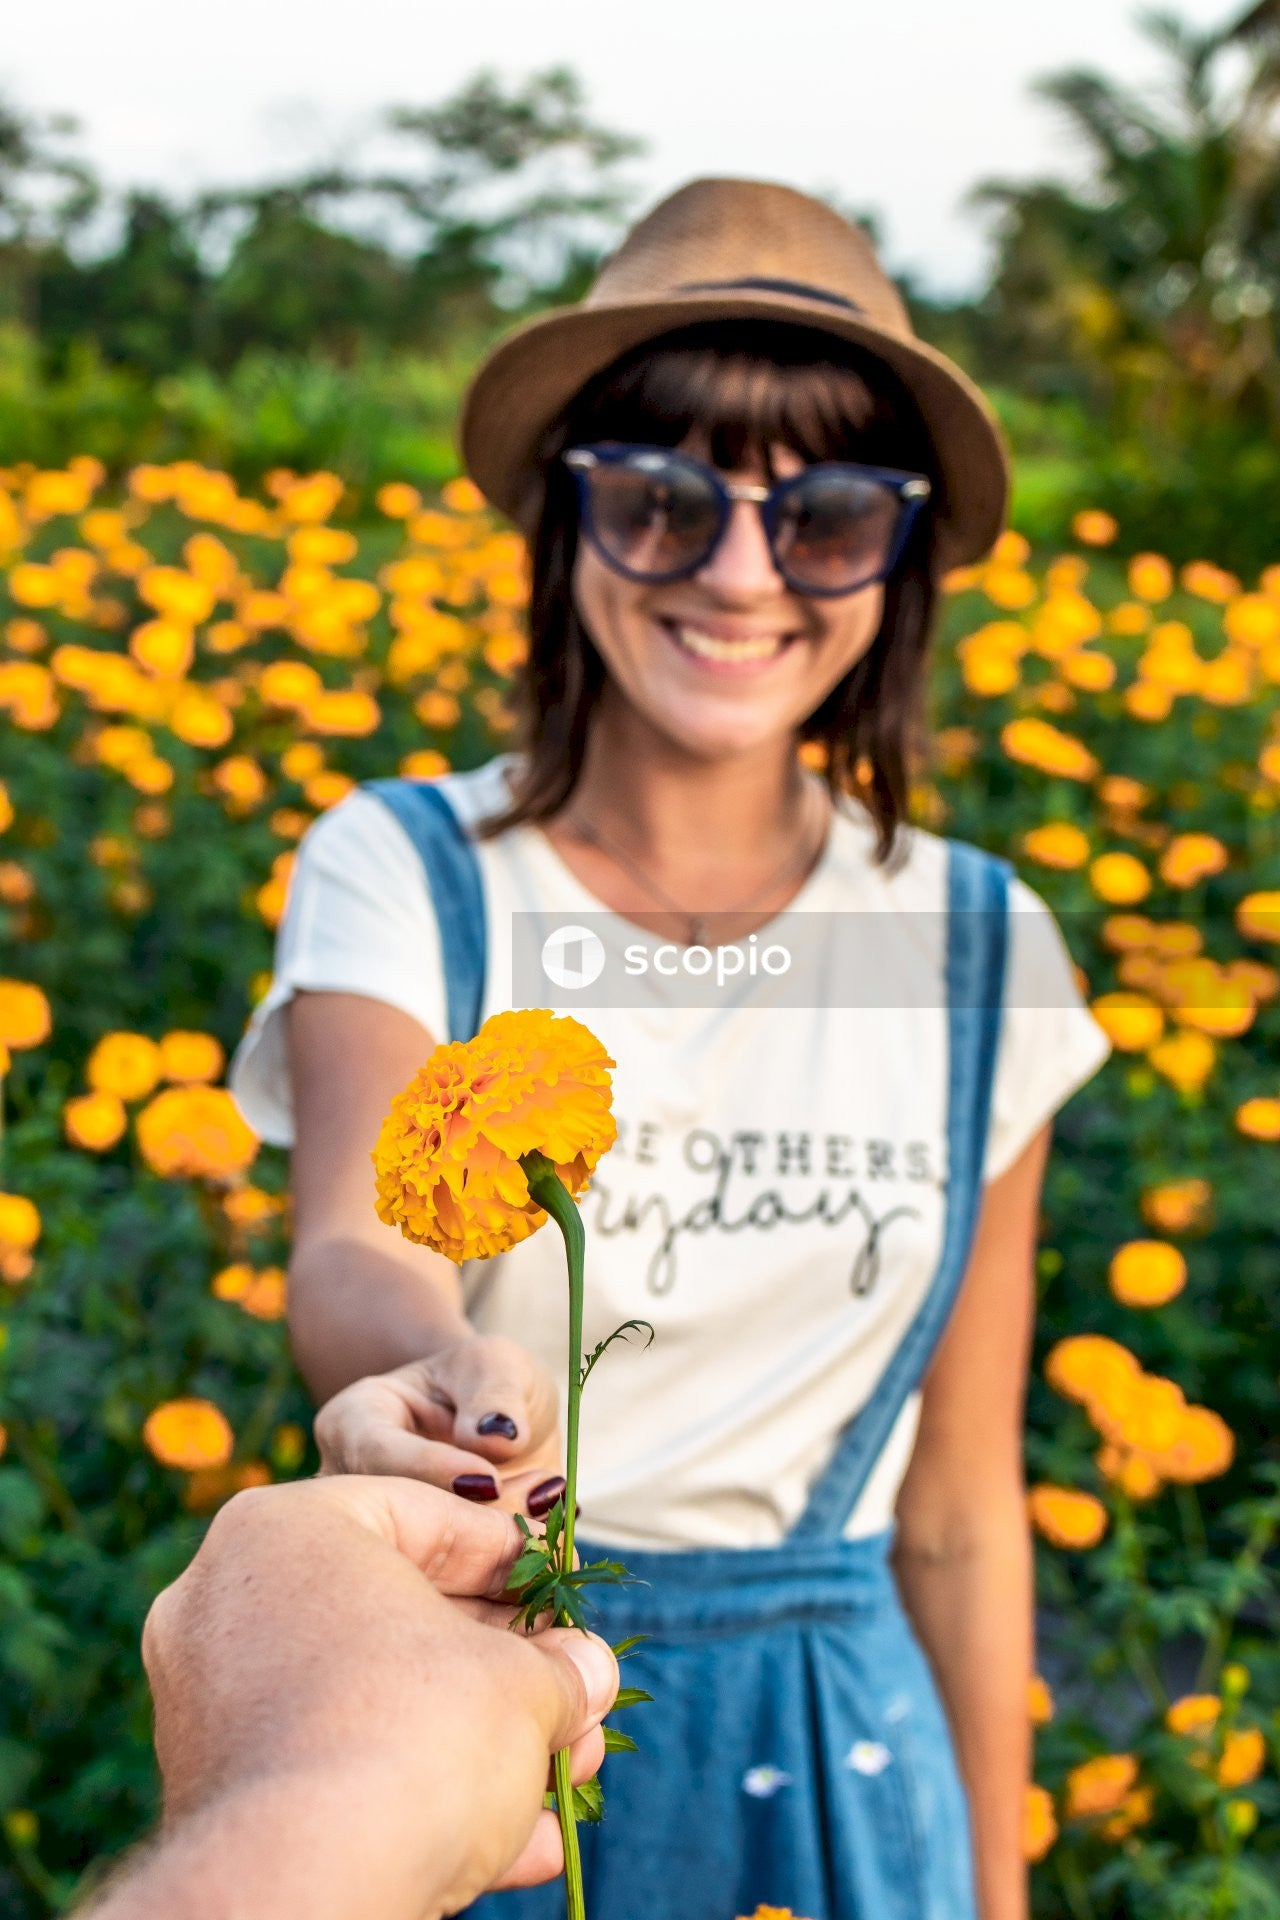 Person giving yellow marigold flower to a woman with brown hat and sunglasses selective-focus